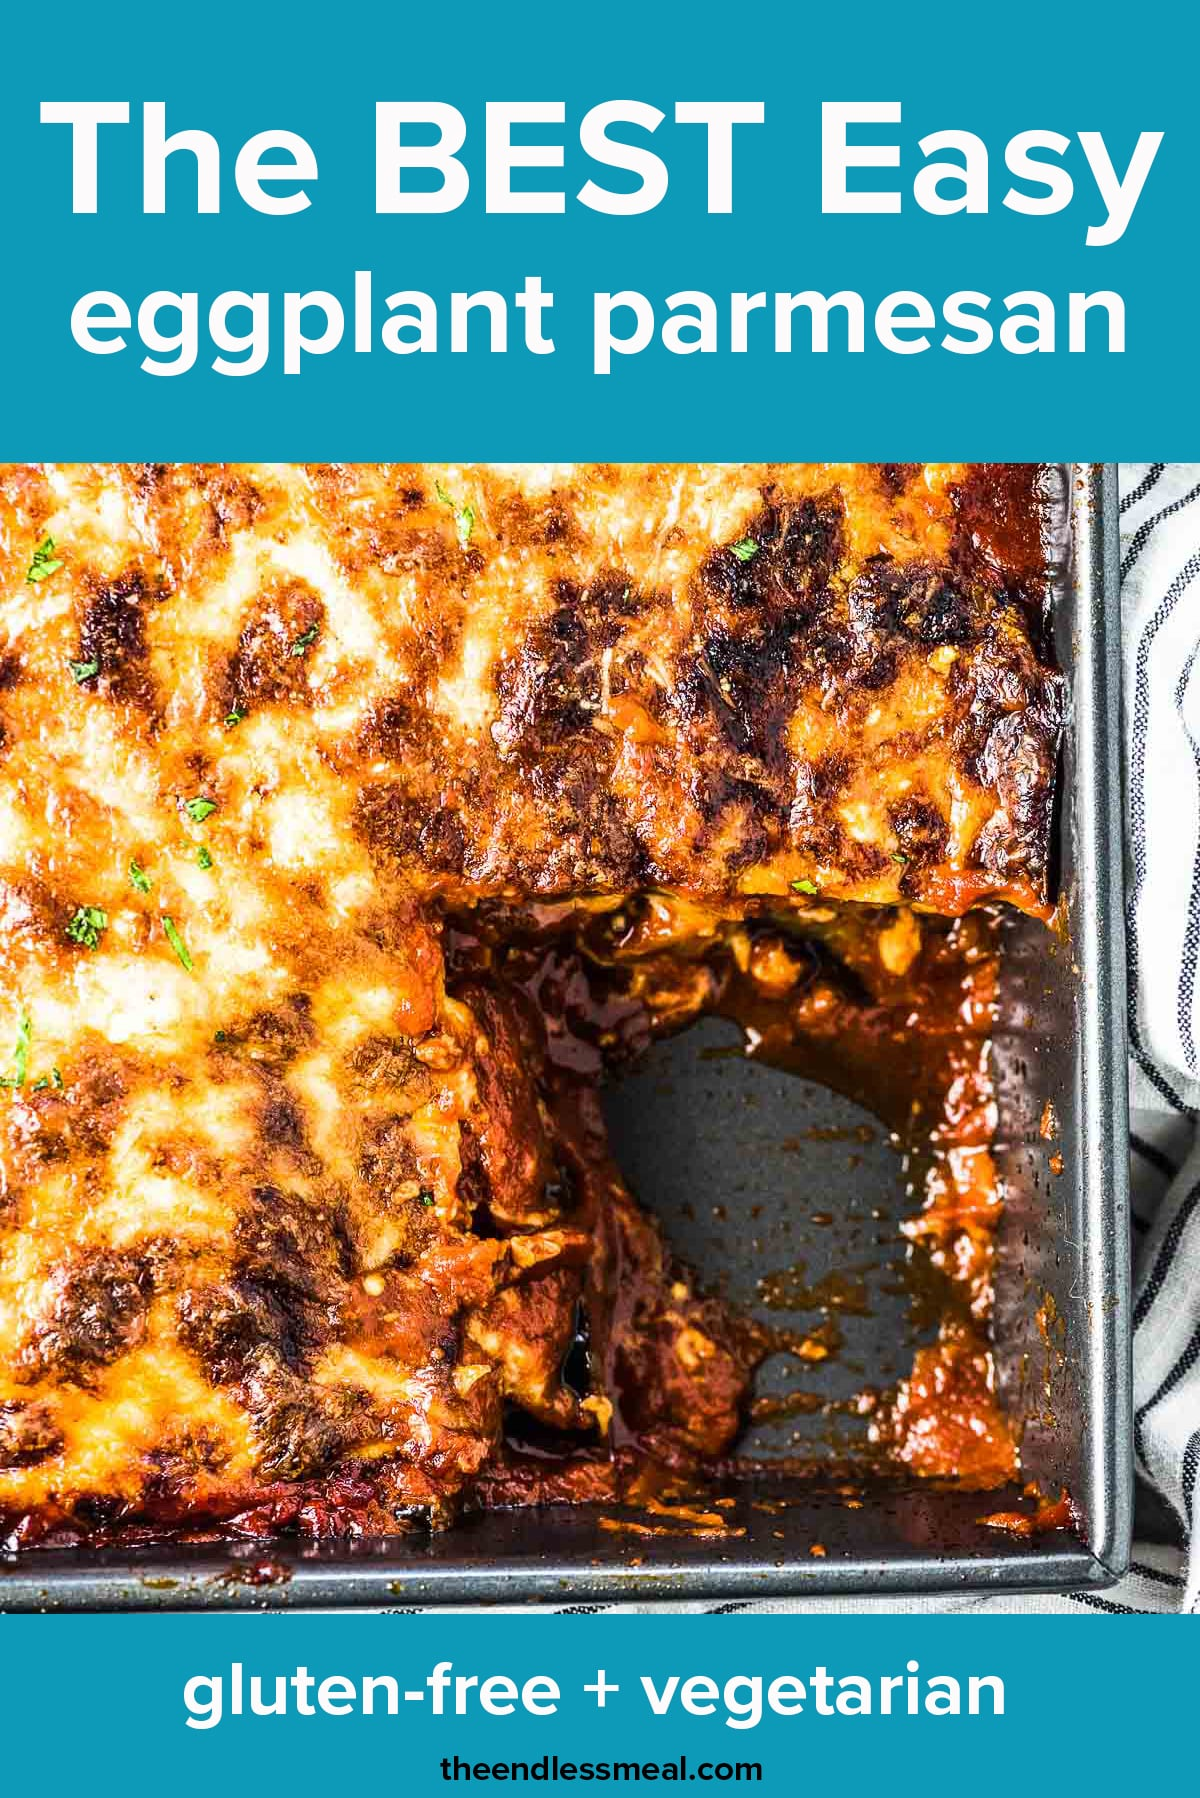 A pan of eggplant parmesan with the recipe title on top of the picture.